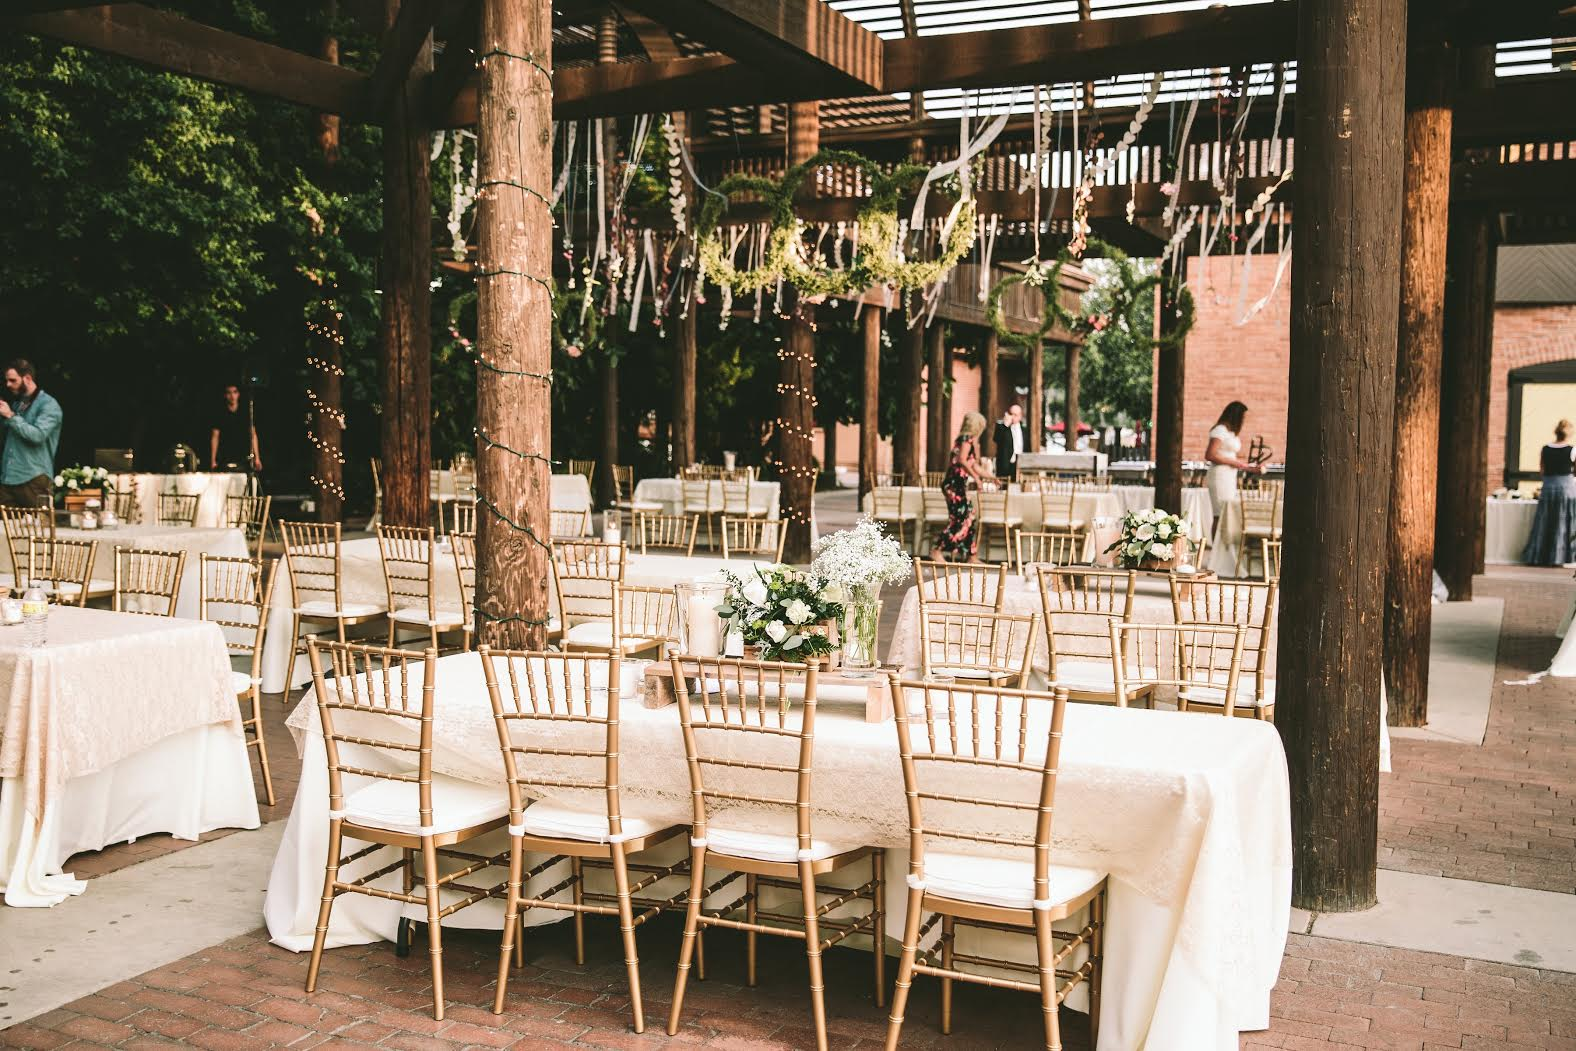 chair rentals phoenix westbrook valet stand meet real brides t + a! | royalty